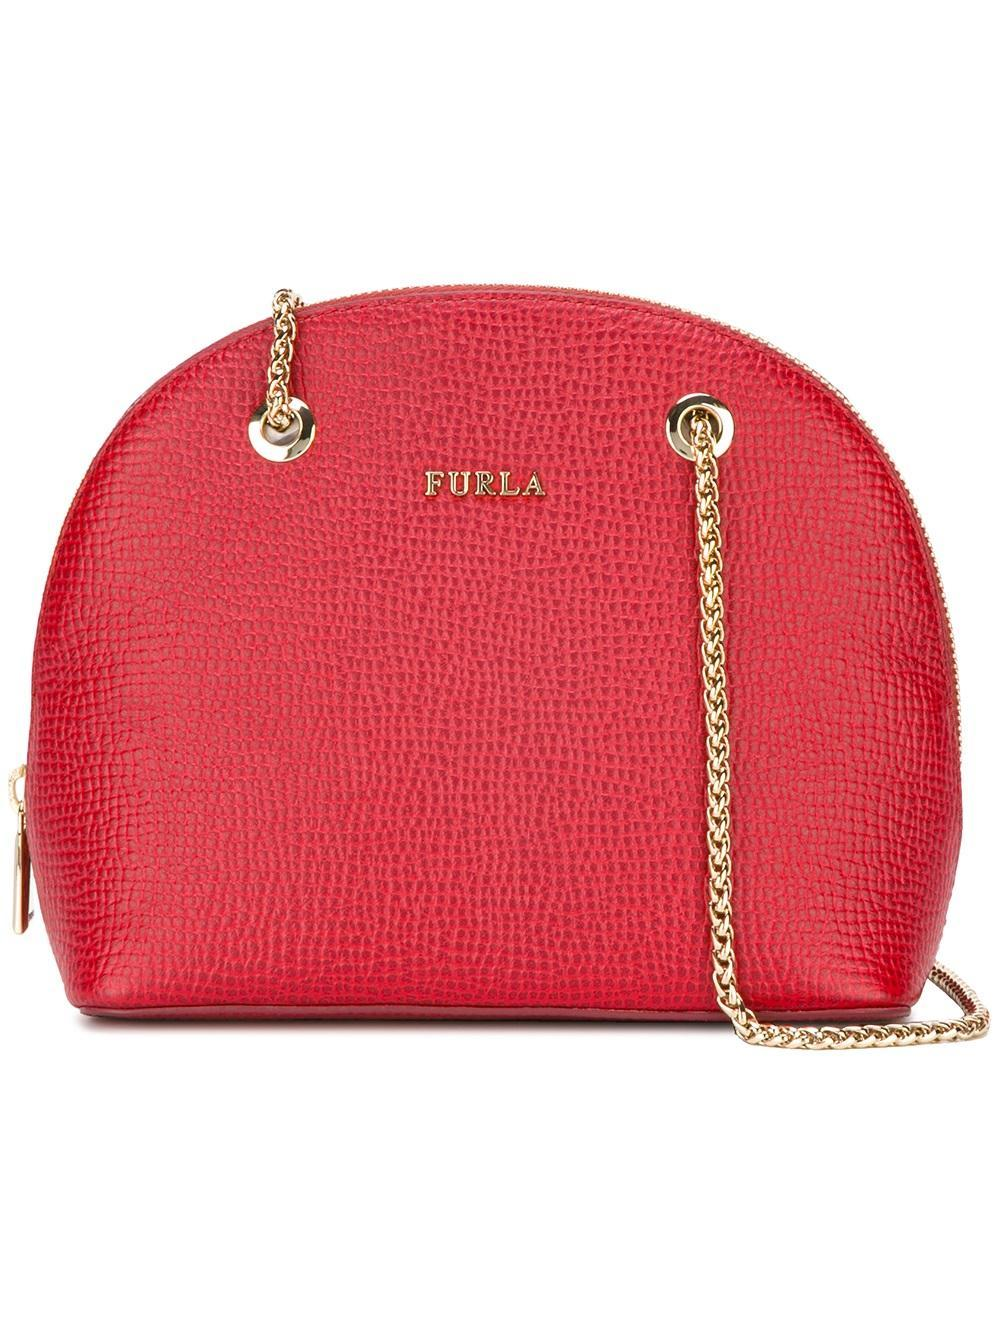 furla asia crossbody pouch in red lyst. Black Bedroom Furniture Sets. Home Design Ideas